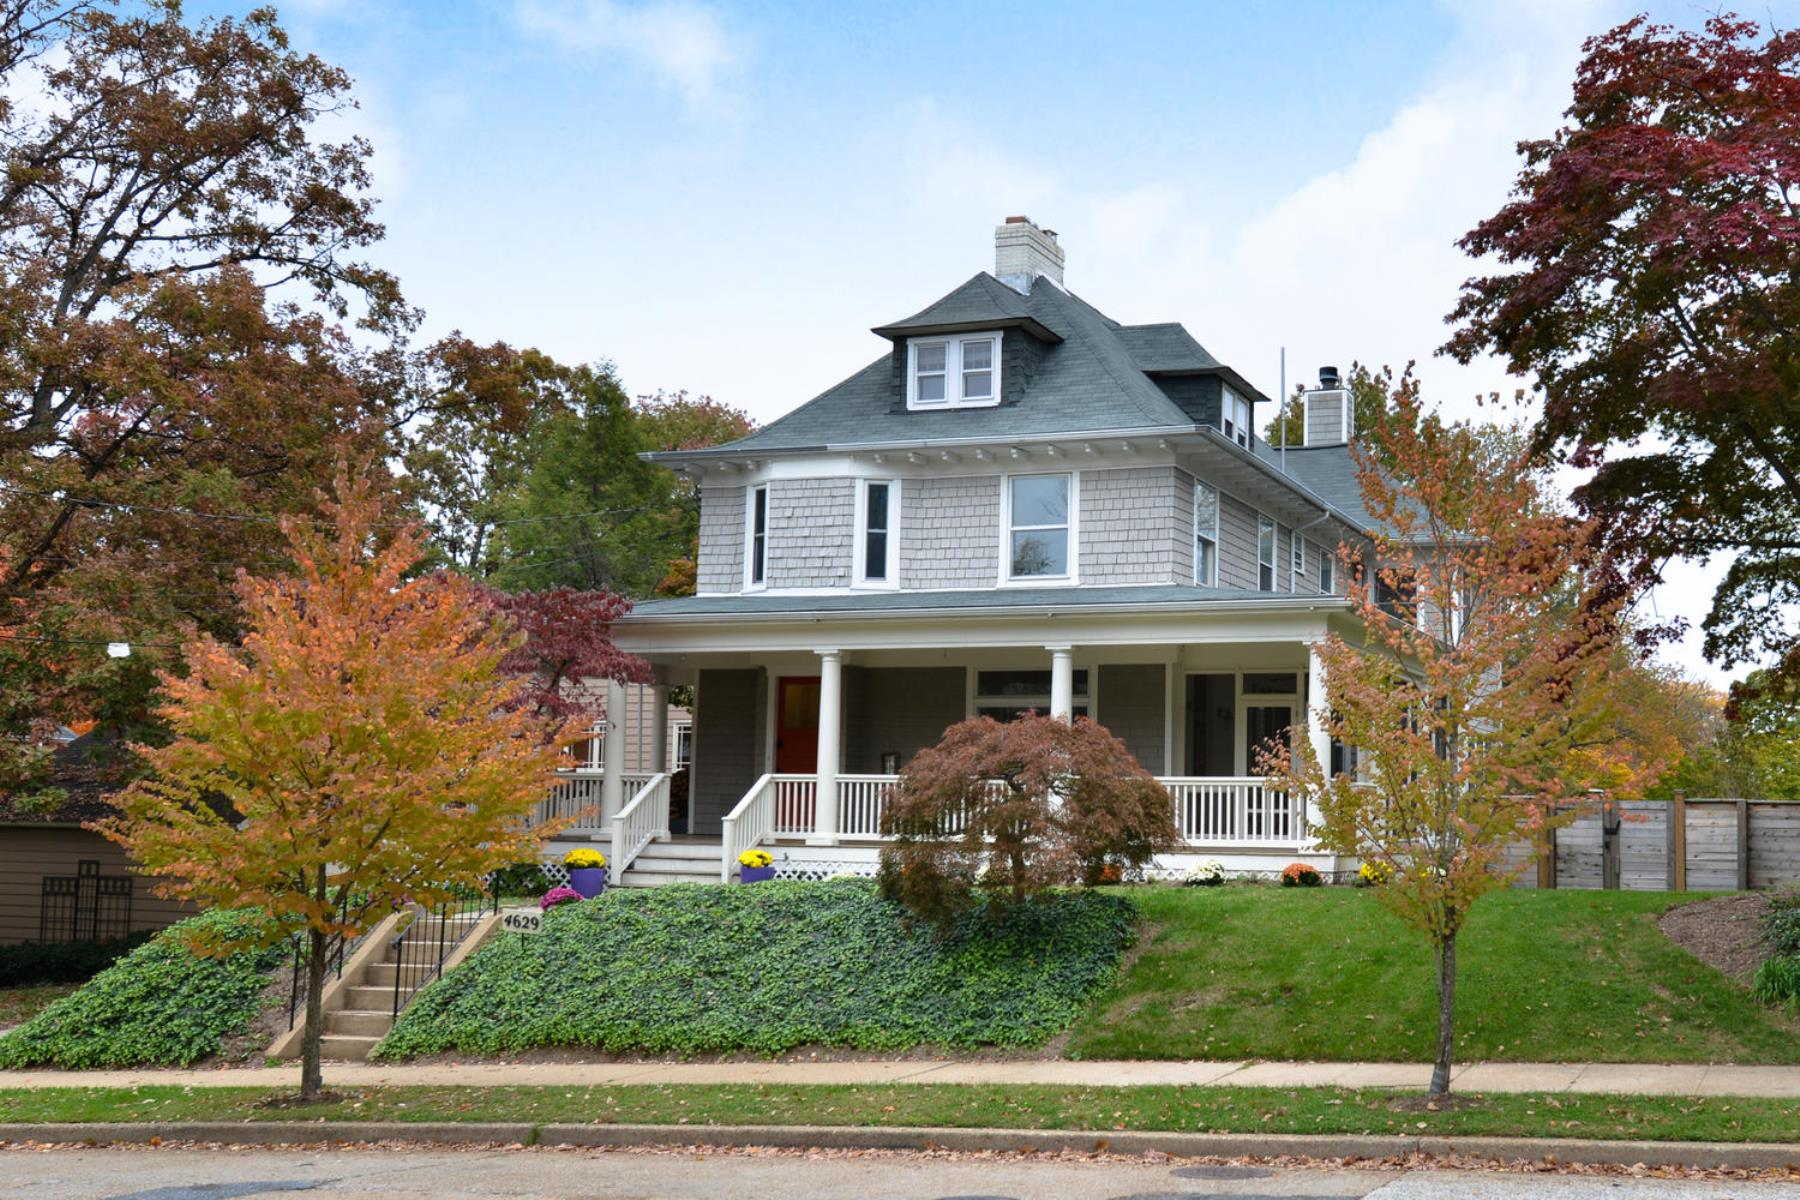 Single Family Home for Sale at 4629 30th Street Nw, Washington Washington, District Of Columbia 20008 United States